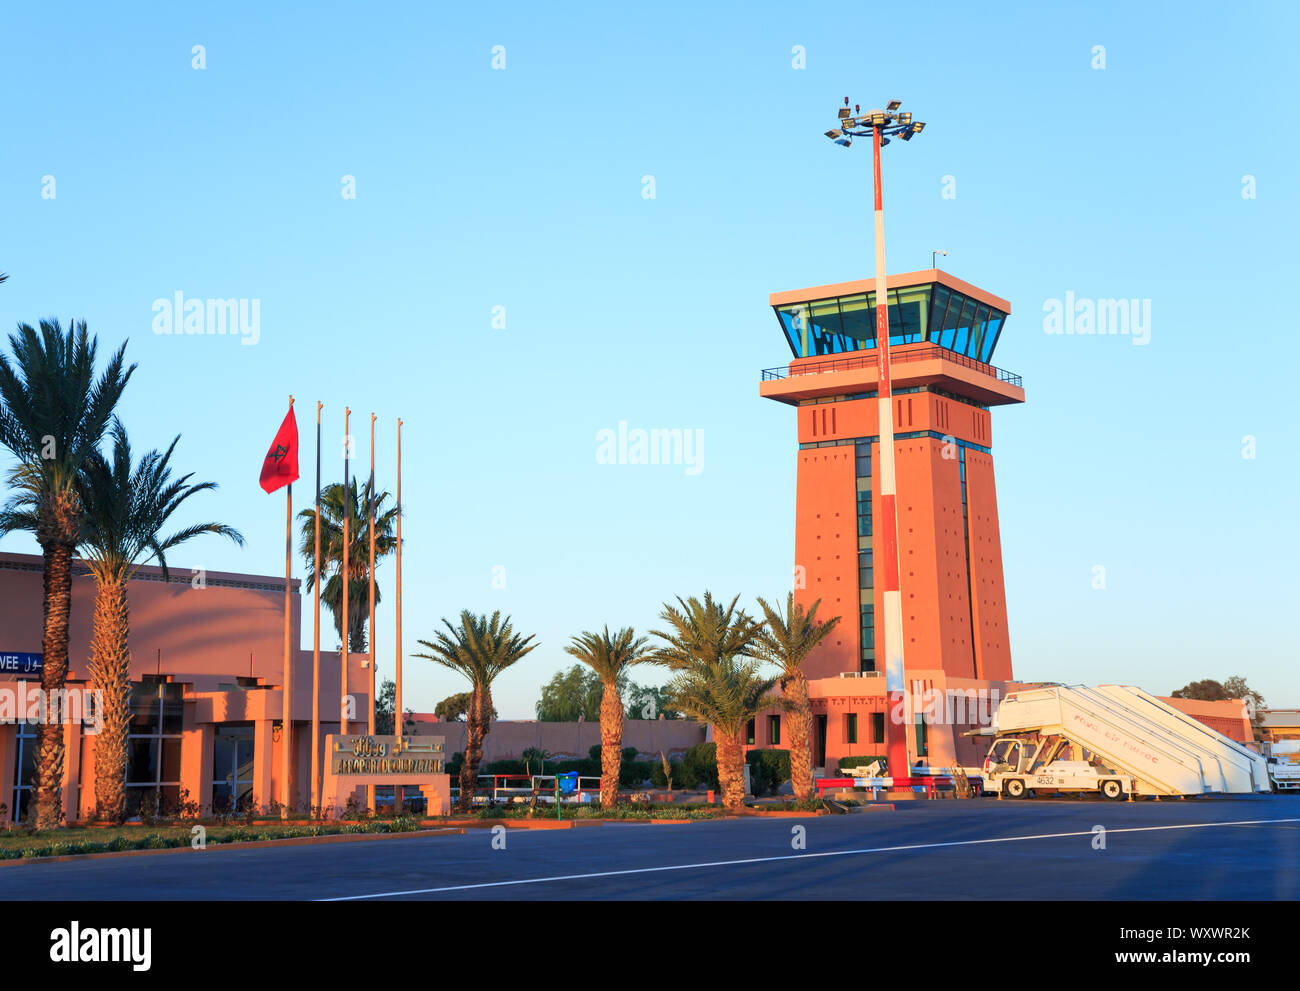 ouarzazate morocco feb 28 2016 ouarzazate airport ouarzazate nicknamed the door of the desert is a city and capital of ouarzazate province in d WXWR2K